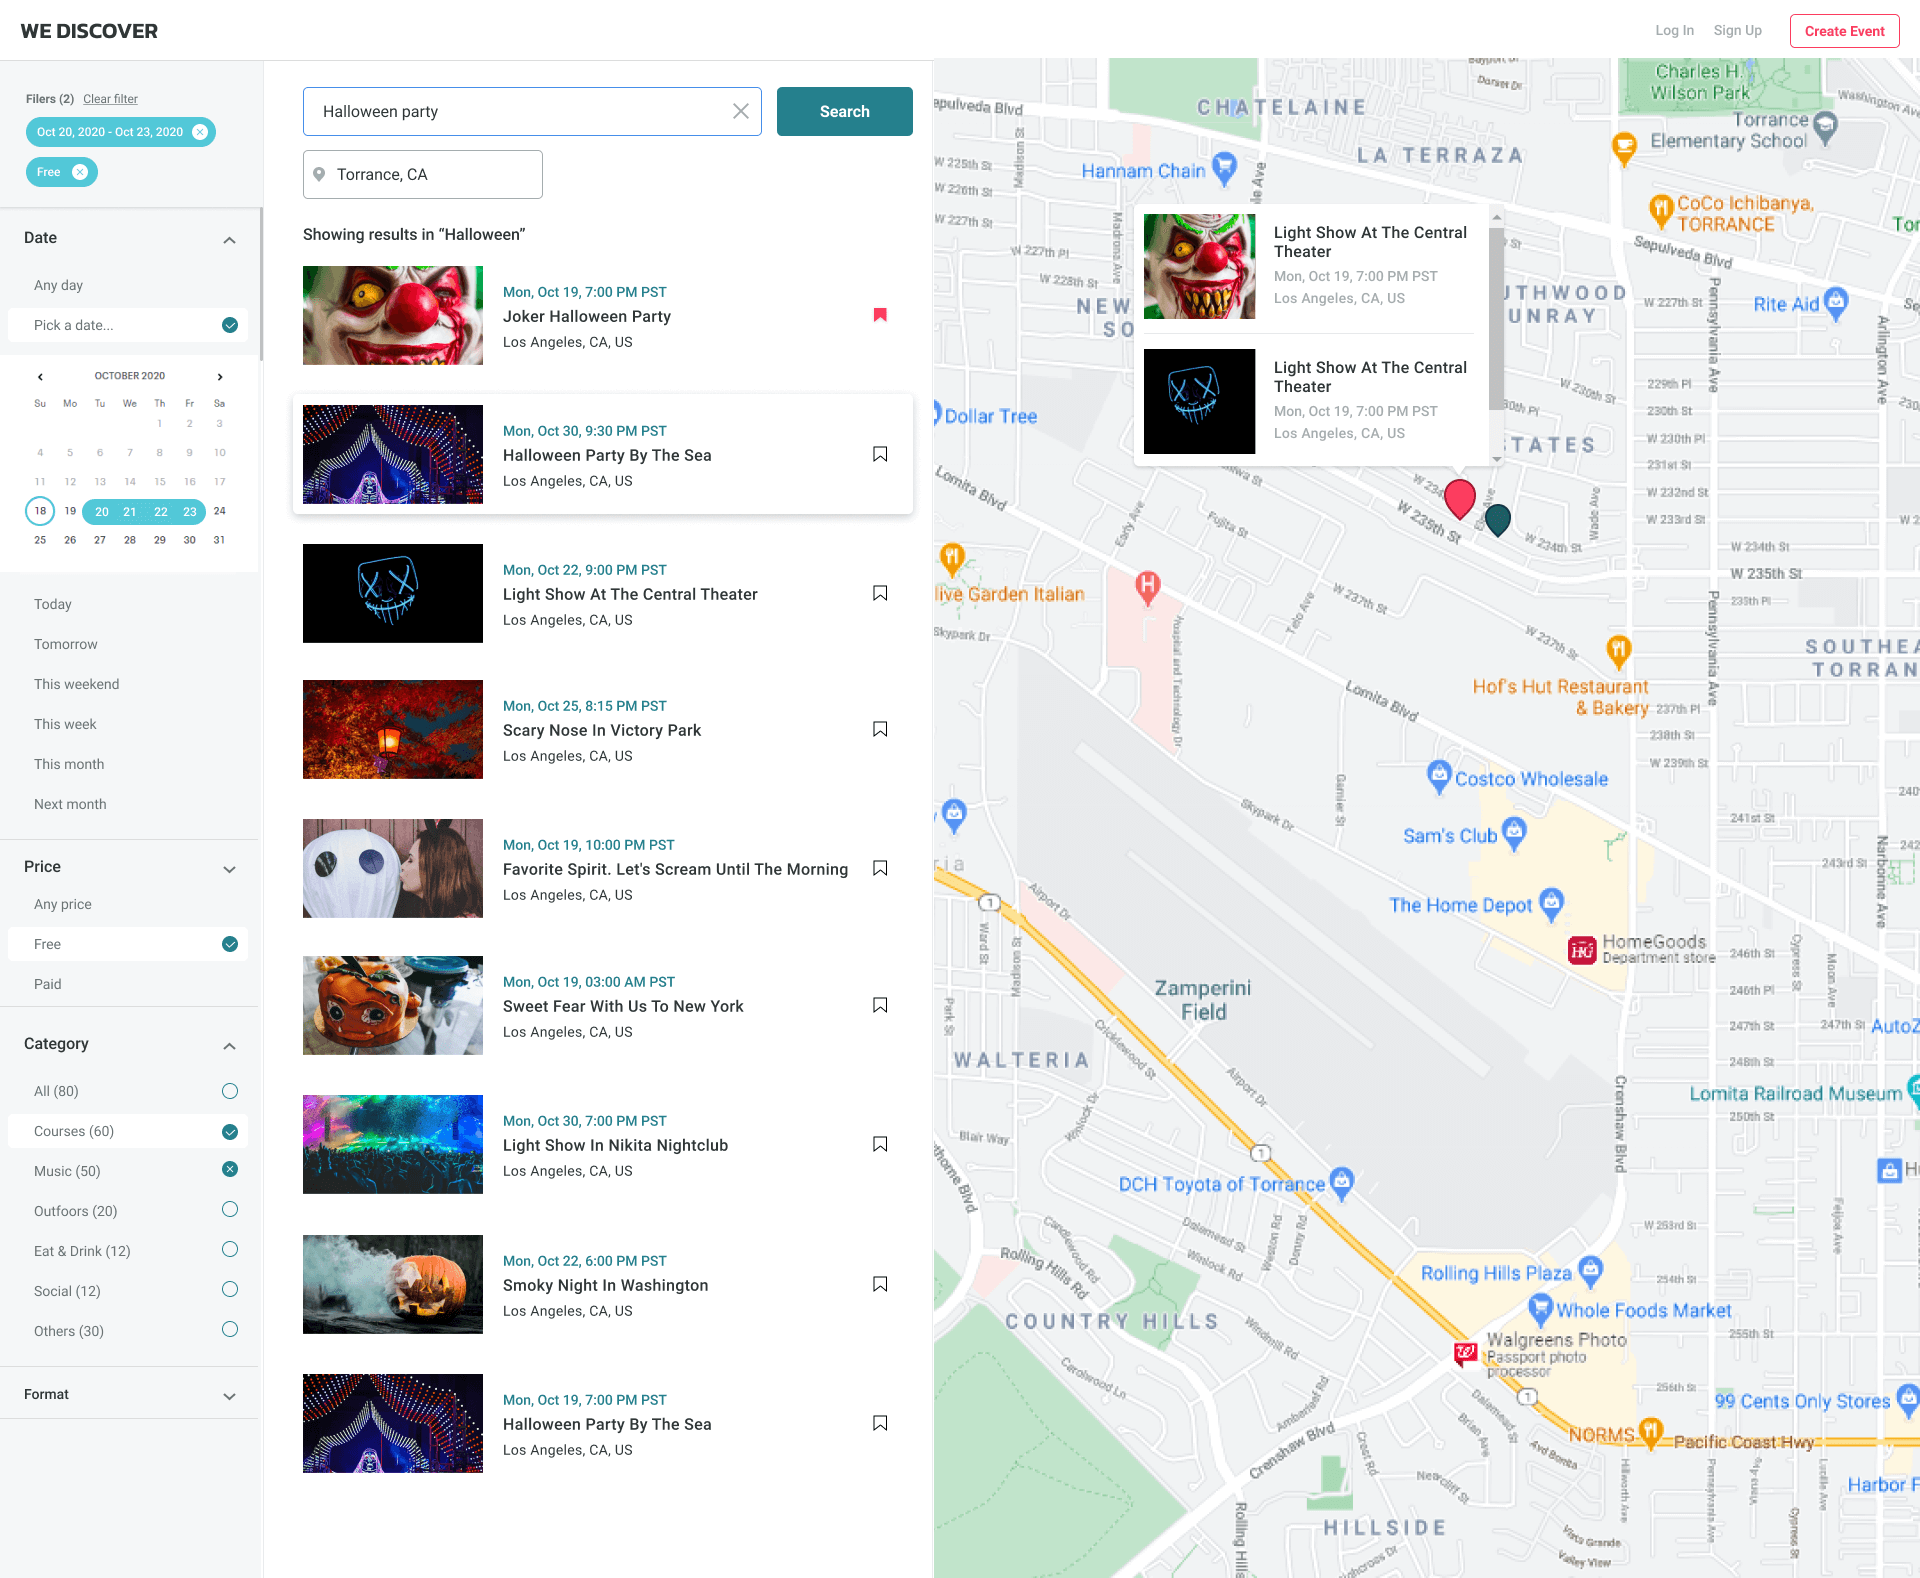 WeDiscover search event page